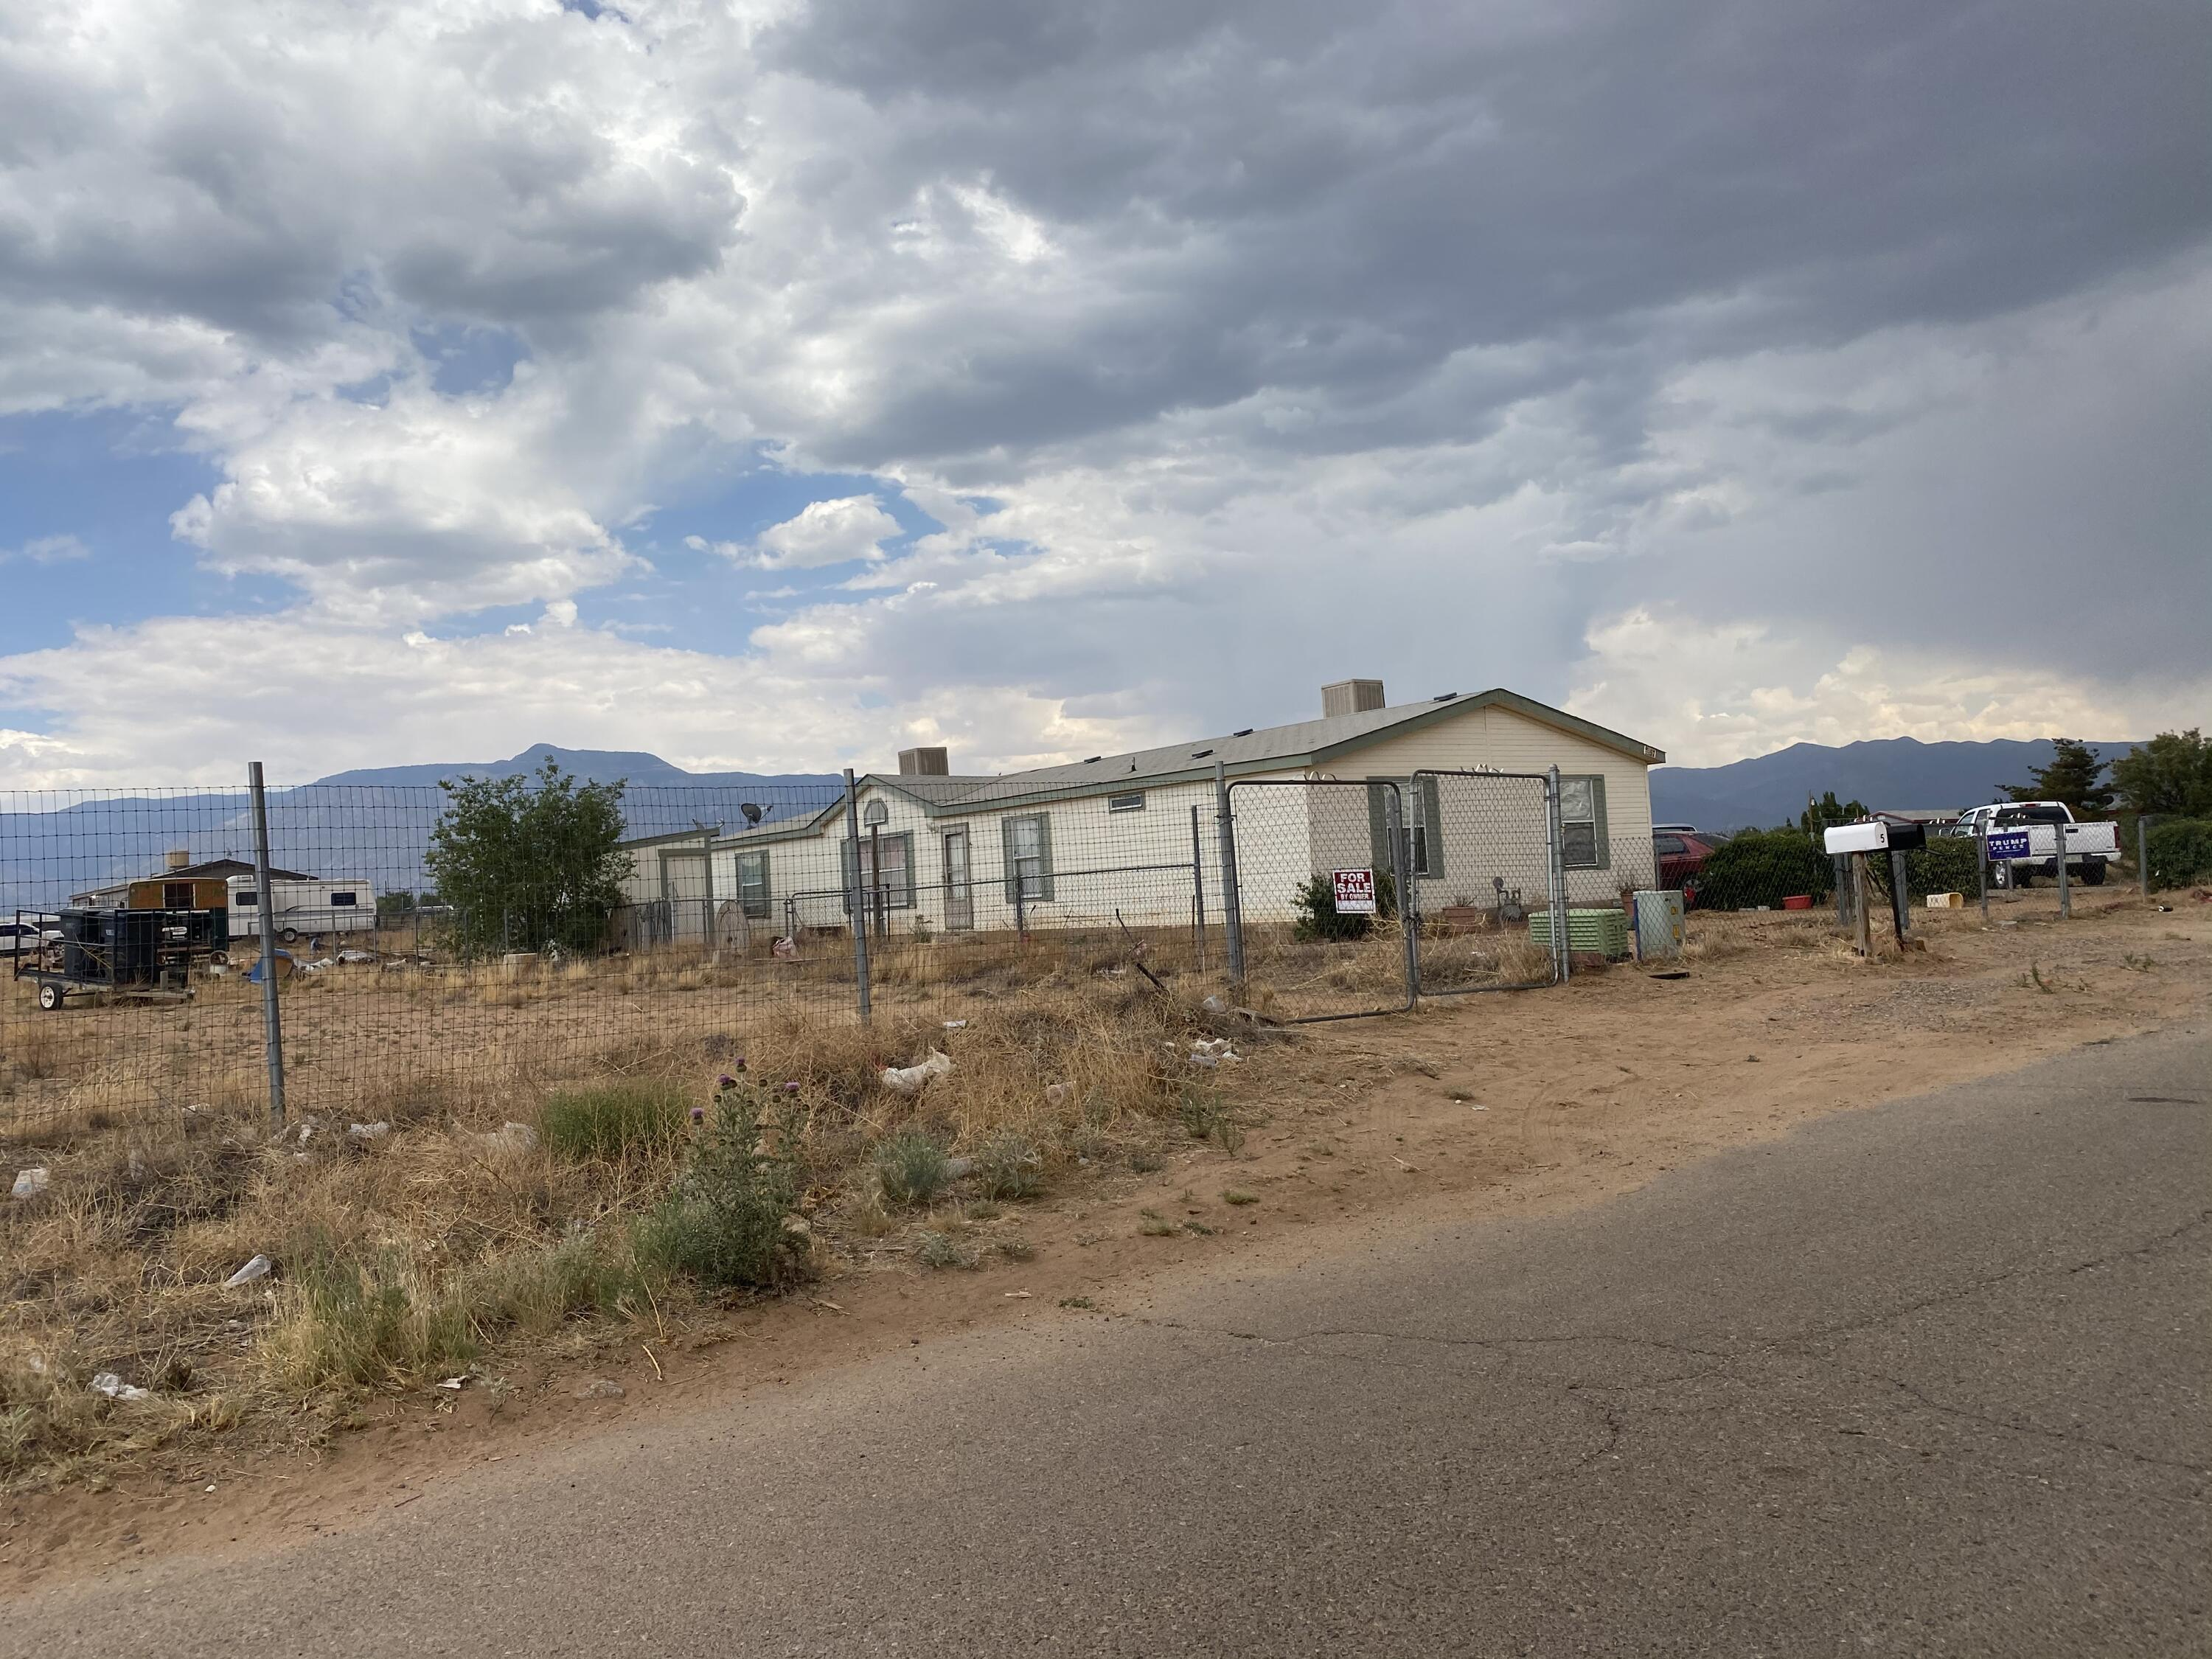 If you are looking for space look no further this 4 bedroom will fit all your needs country living not to far from town, with only 10 minute drive from Los Lunas main street, with enough land to play you don't want to miss out on this spacious home today! schedule a showing today.